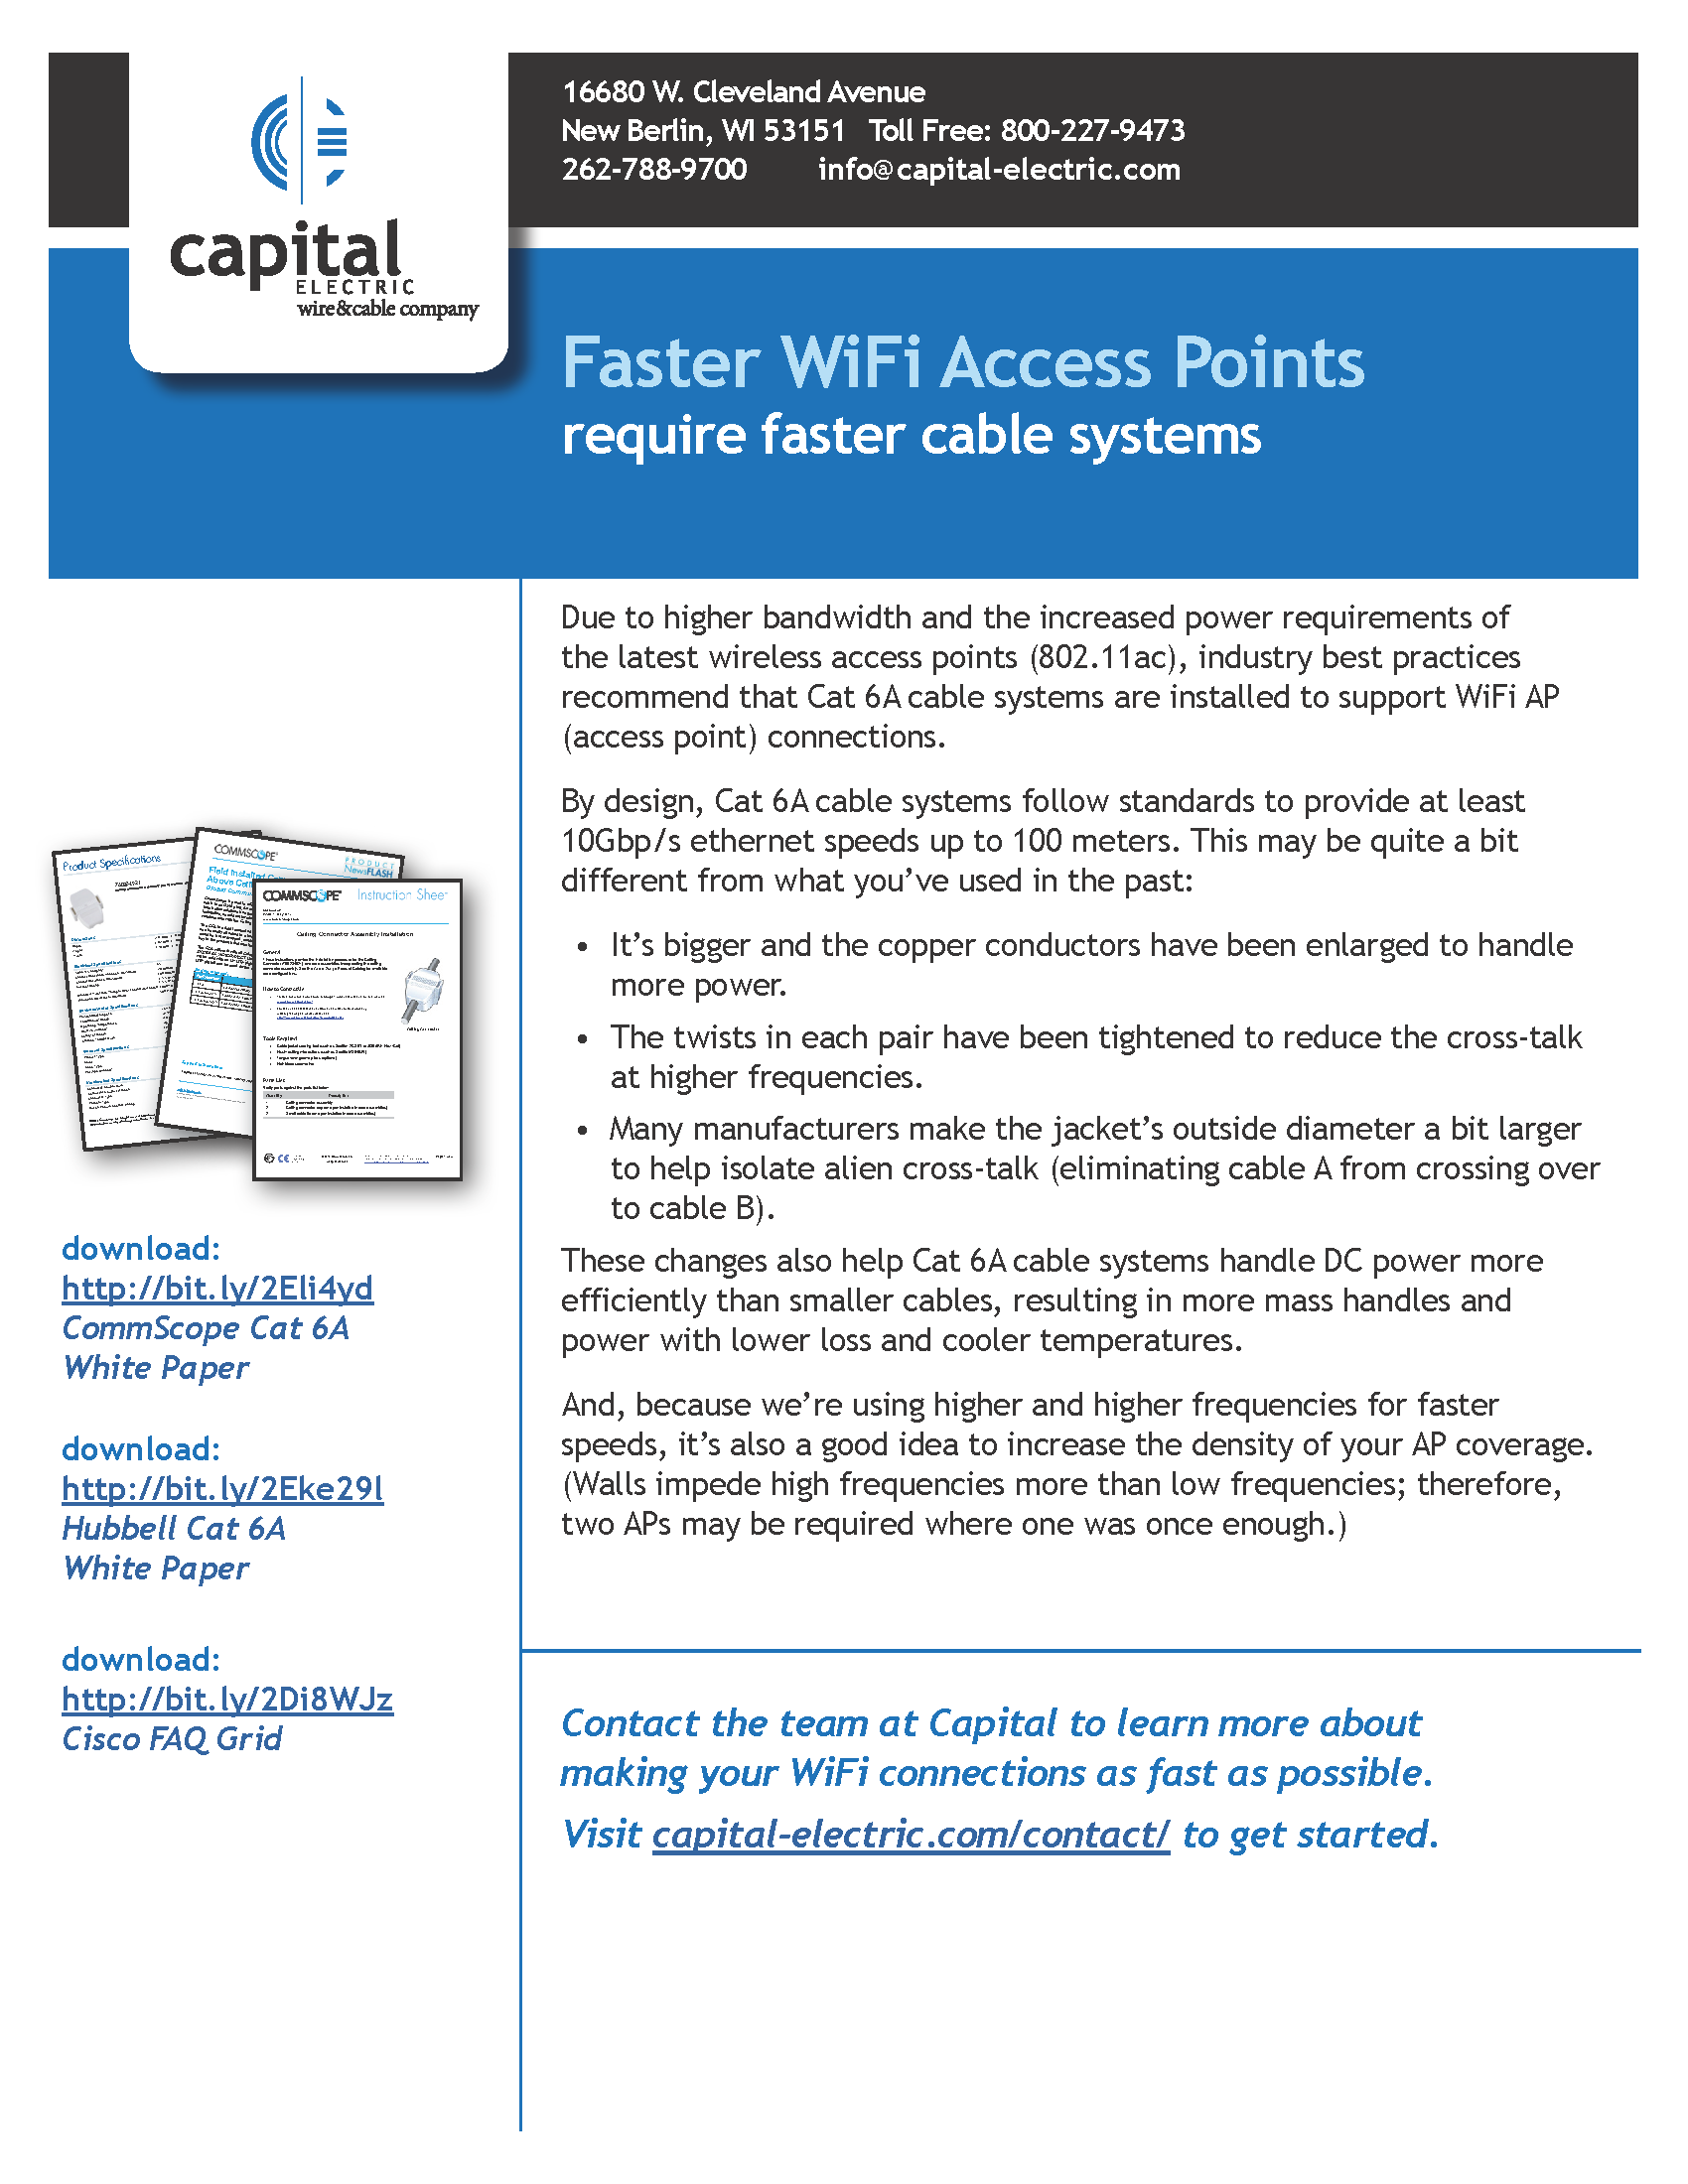 Faster WiFi Access Points require faster cable systems